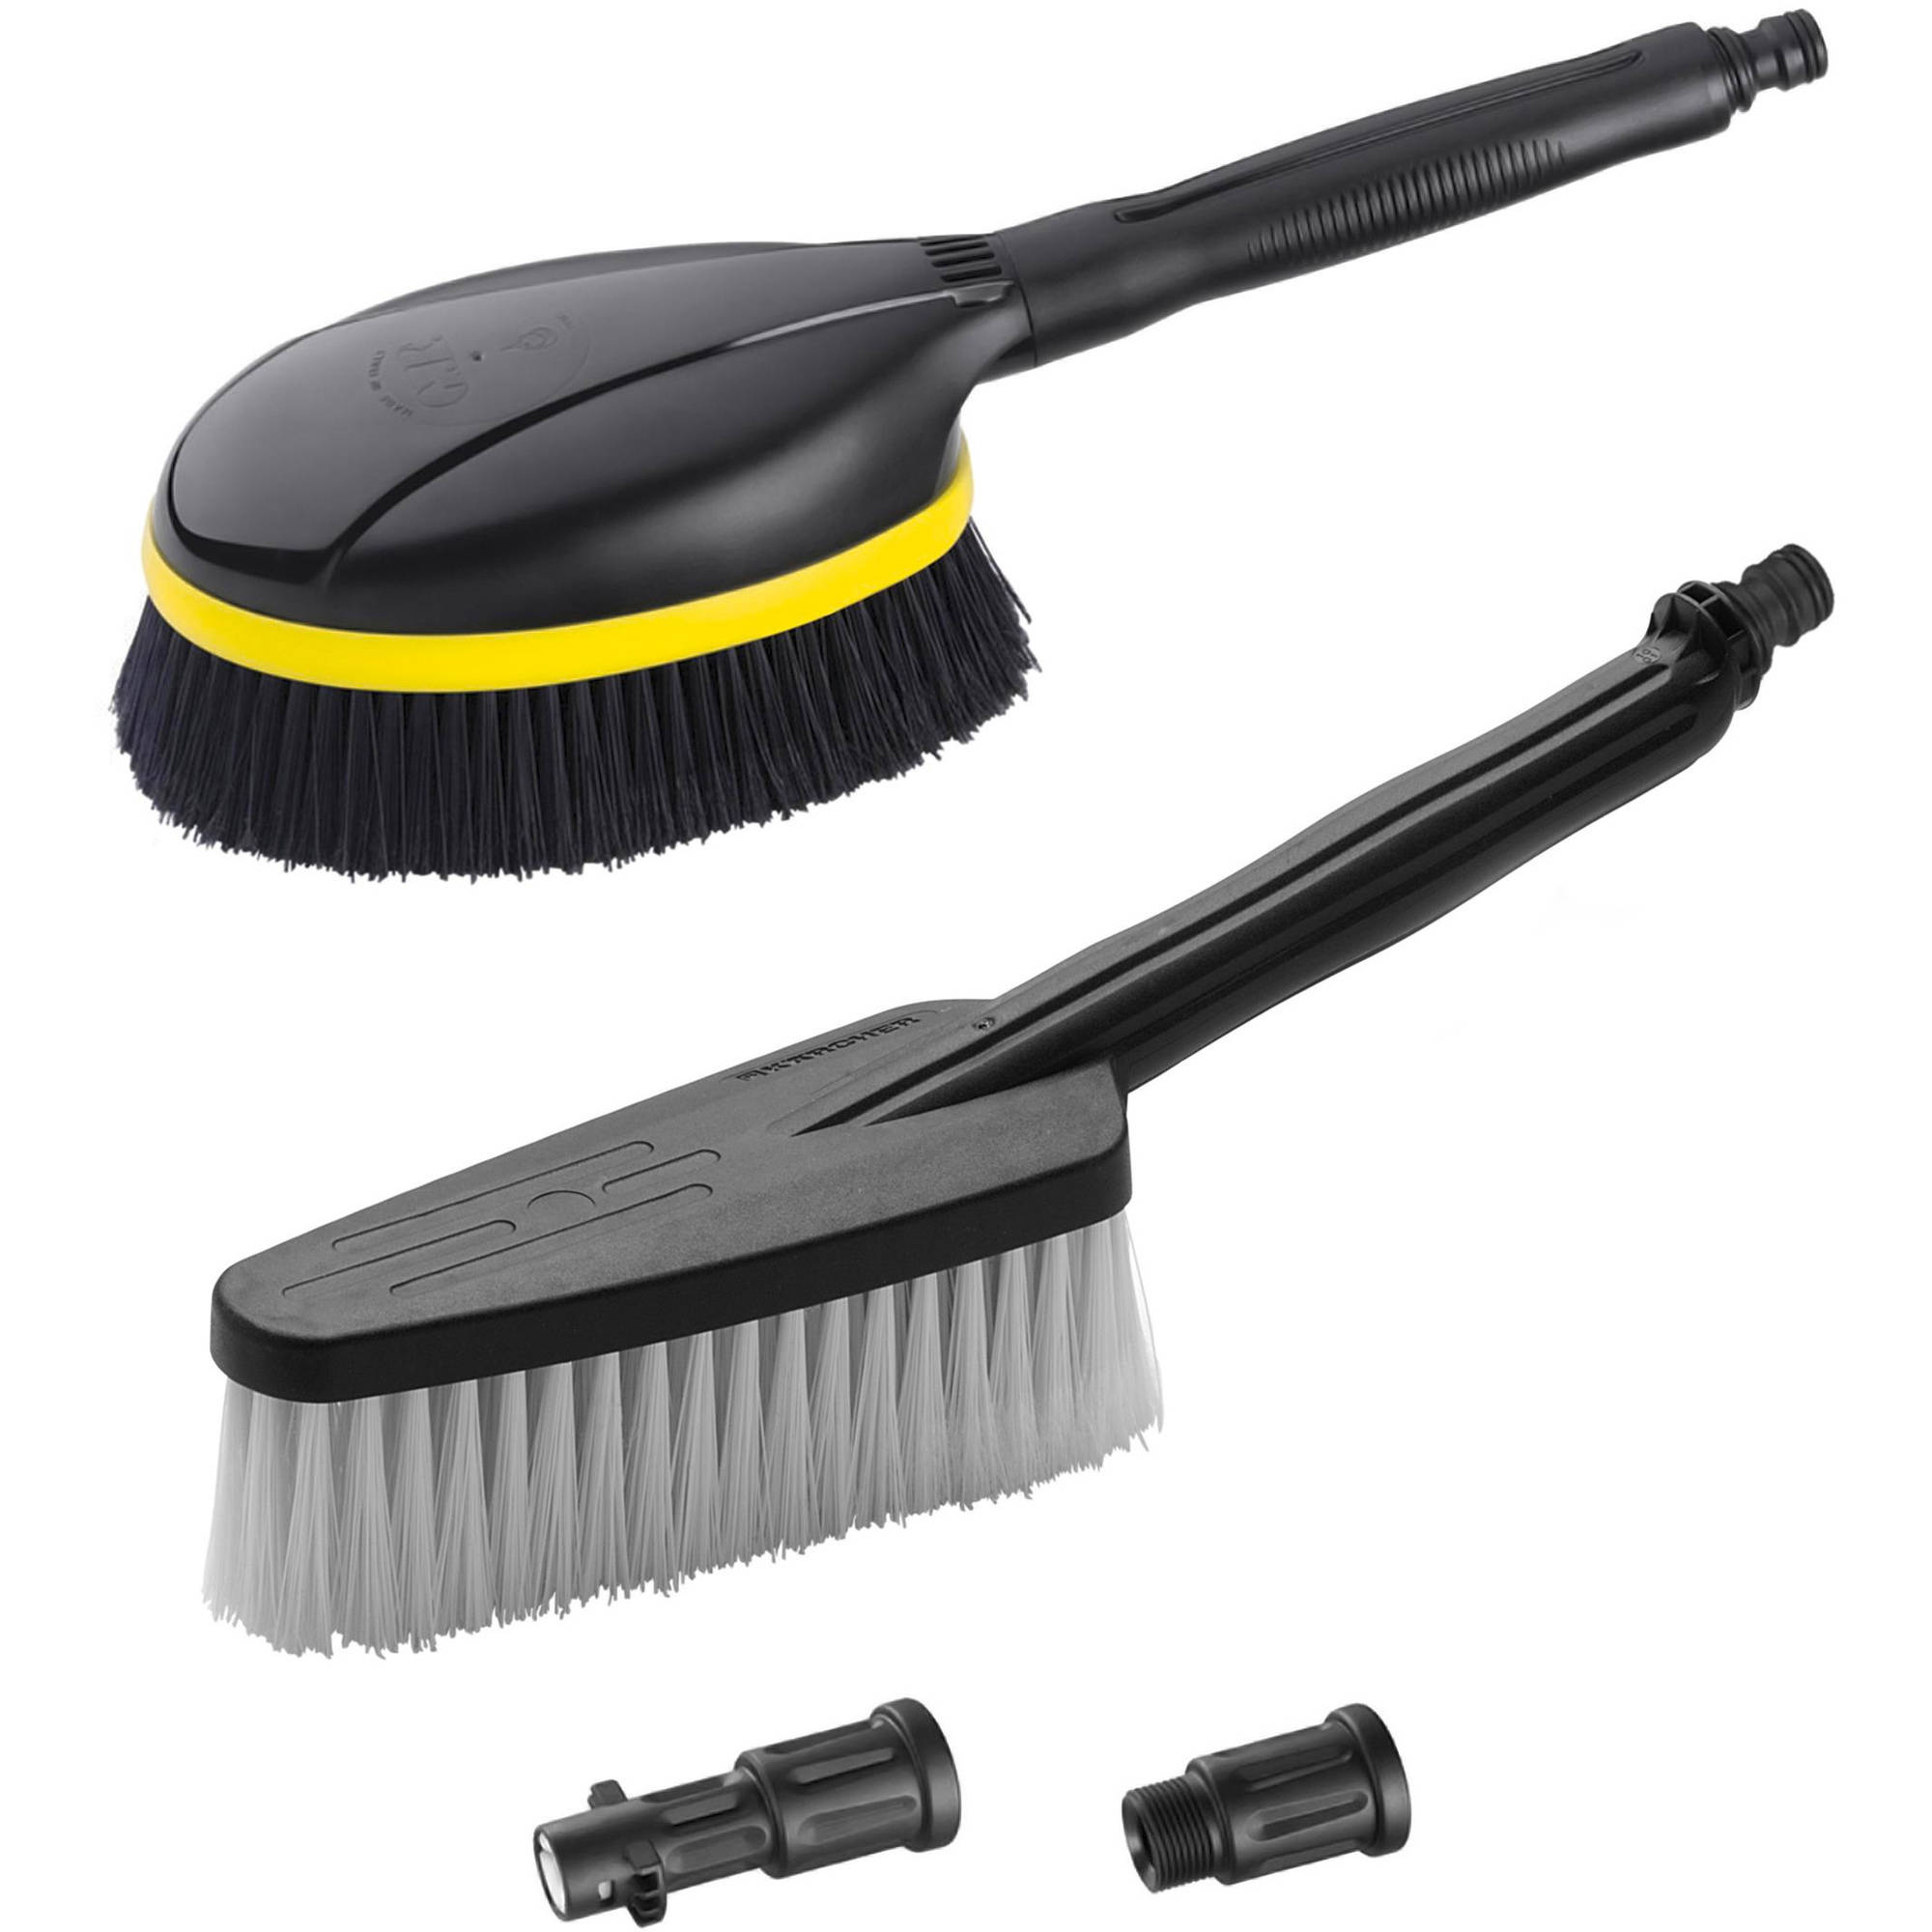 Karcher Universal Wash Brush Kit for Electric and Gas Pressure Washers